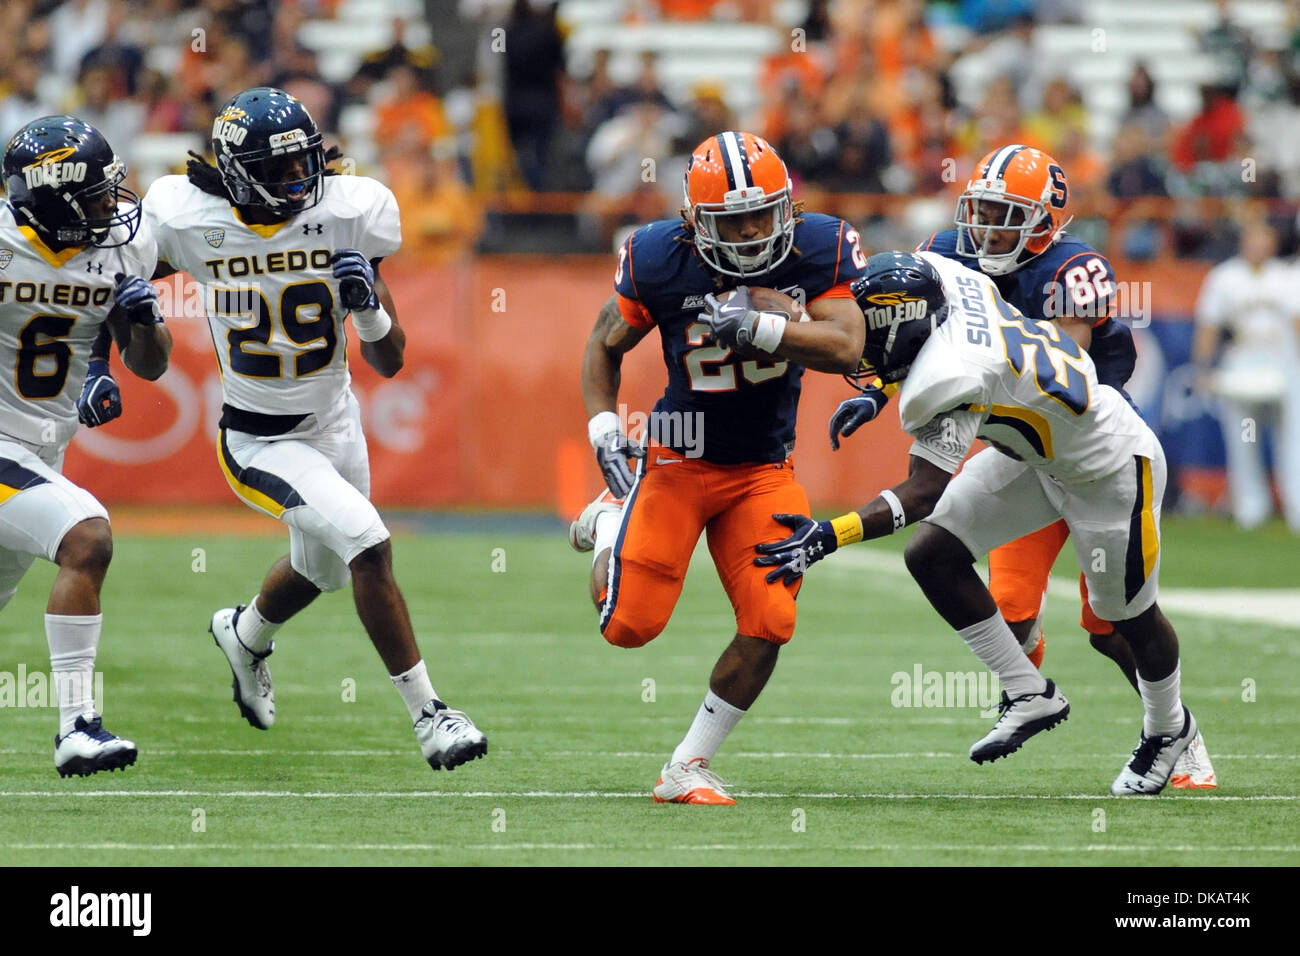 Sept. 24, 2011 - Syracuse, New York, U.S - Syracuse Orange running back Prince-Tyson Gulley (23) burst past Toledo Rockets cornerback Keith Suggs (26) in the second quarter at the Carrier Dome in Syracuse, NY.  Toledo and Syracuse went into the locker room tied at 13. (Credit Image: © Michael Johnson/Southcreek Global/ZUMAPRESS.com) - Stock Image